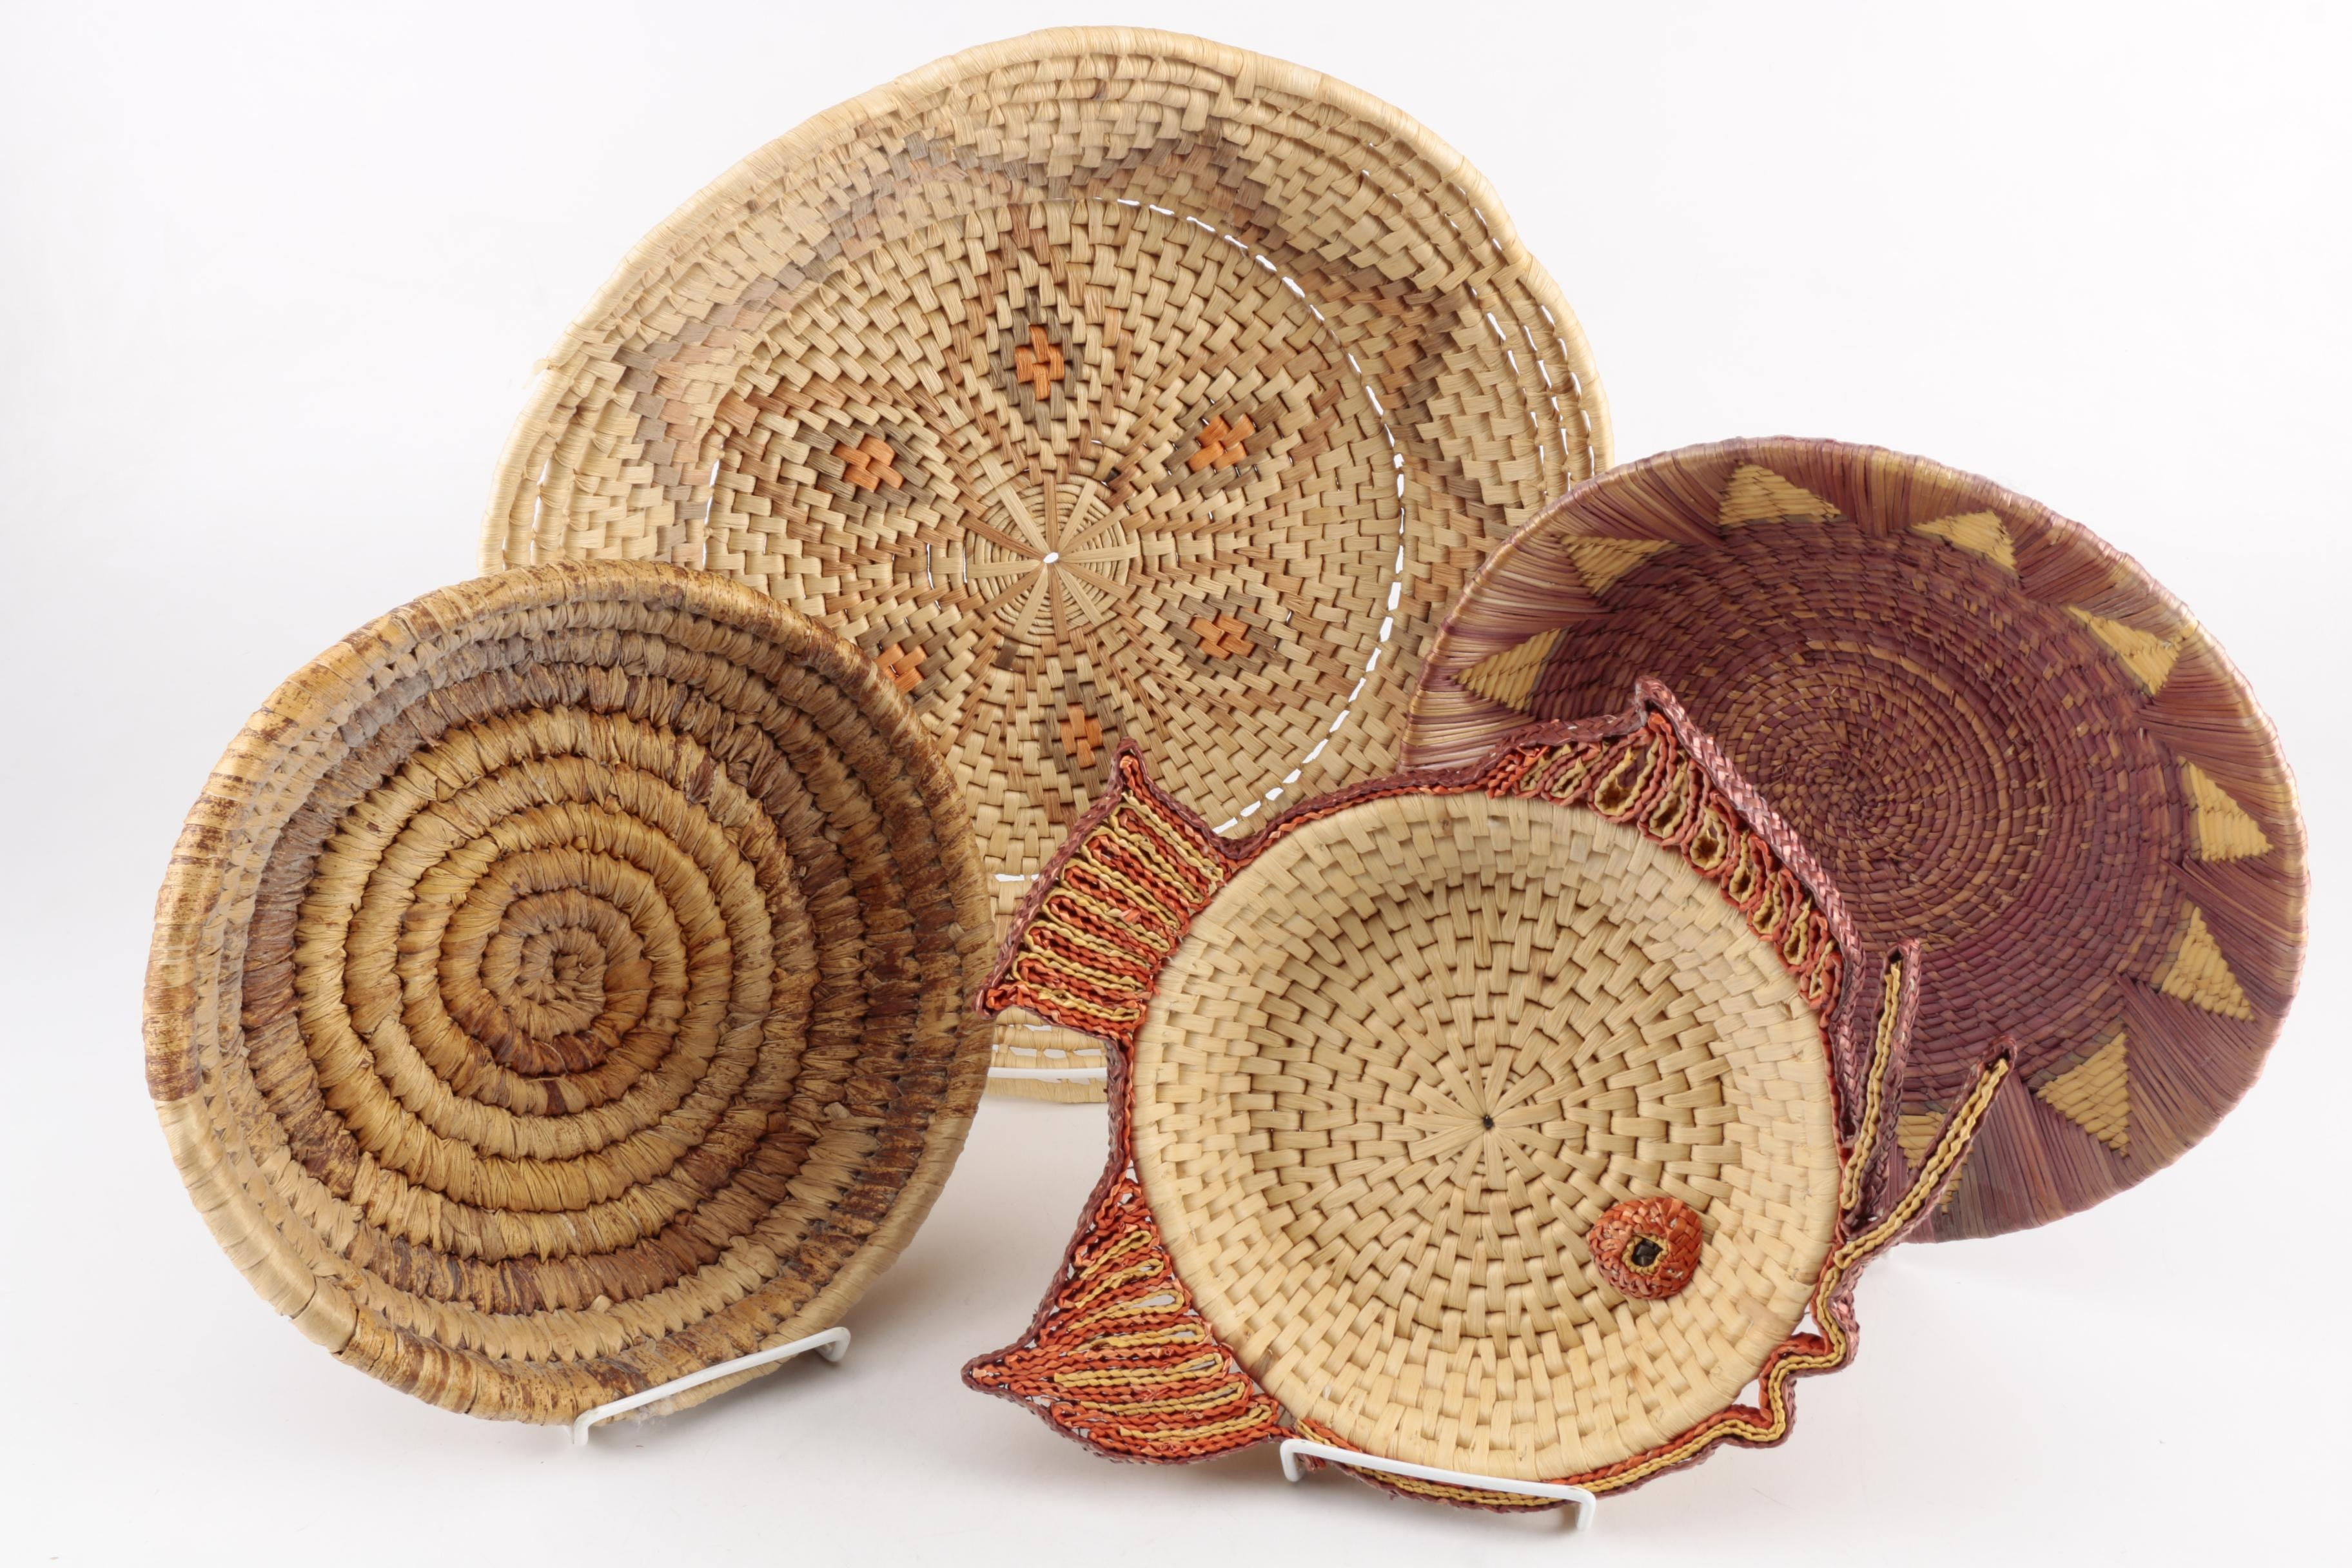 Woven Straw Baskets